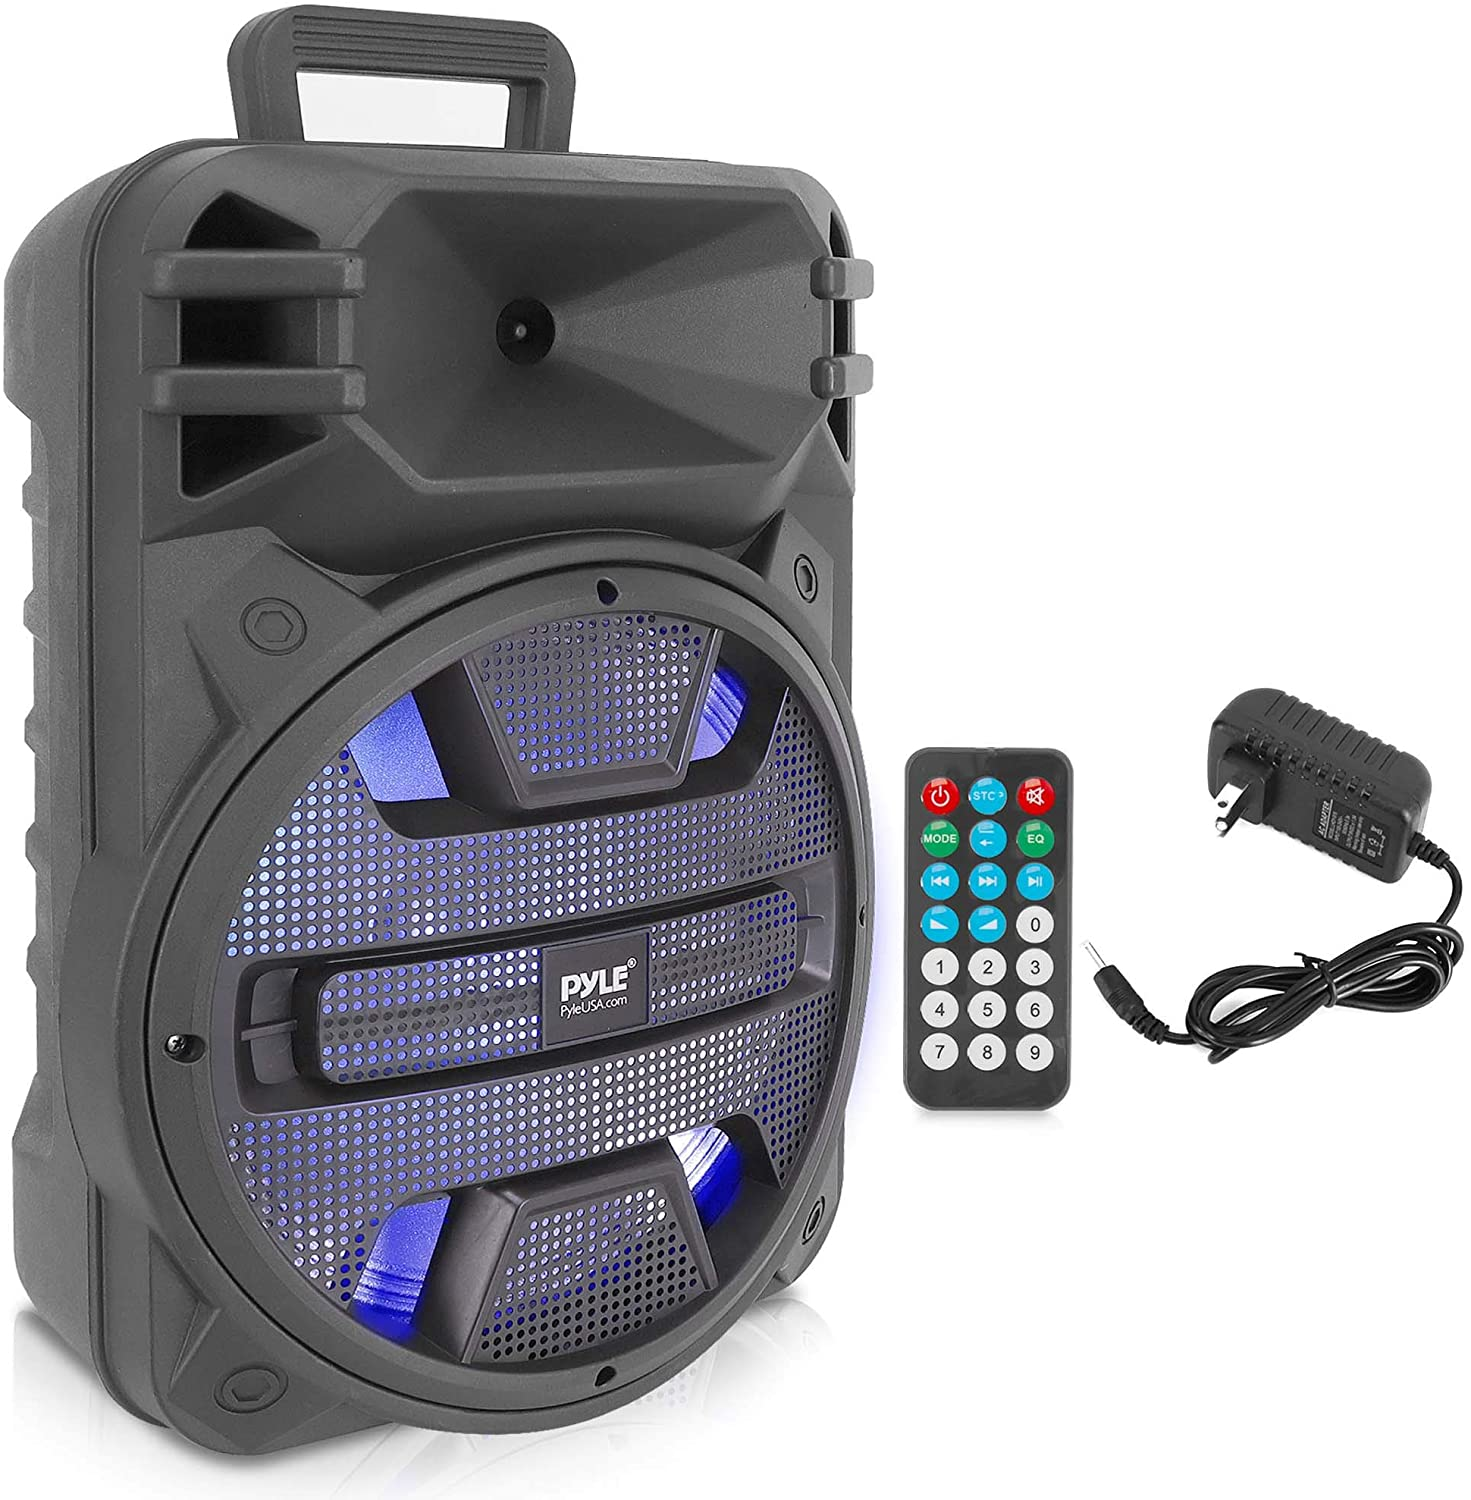 Portable Bluetooth PA Speaker System - 10W Outdoor Bluetooth Speaker  Portable PA System w/Microphone in, Party Lights, USB SD Card Reader, FM  Radio,